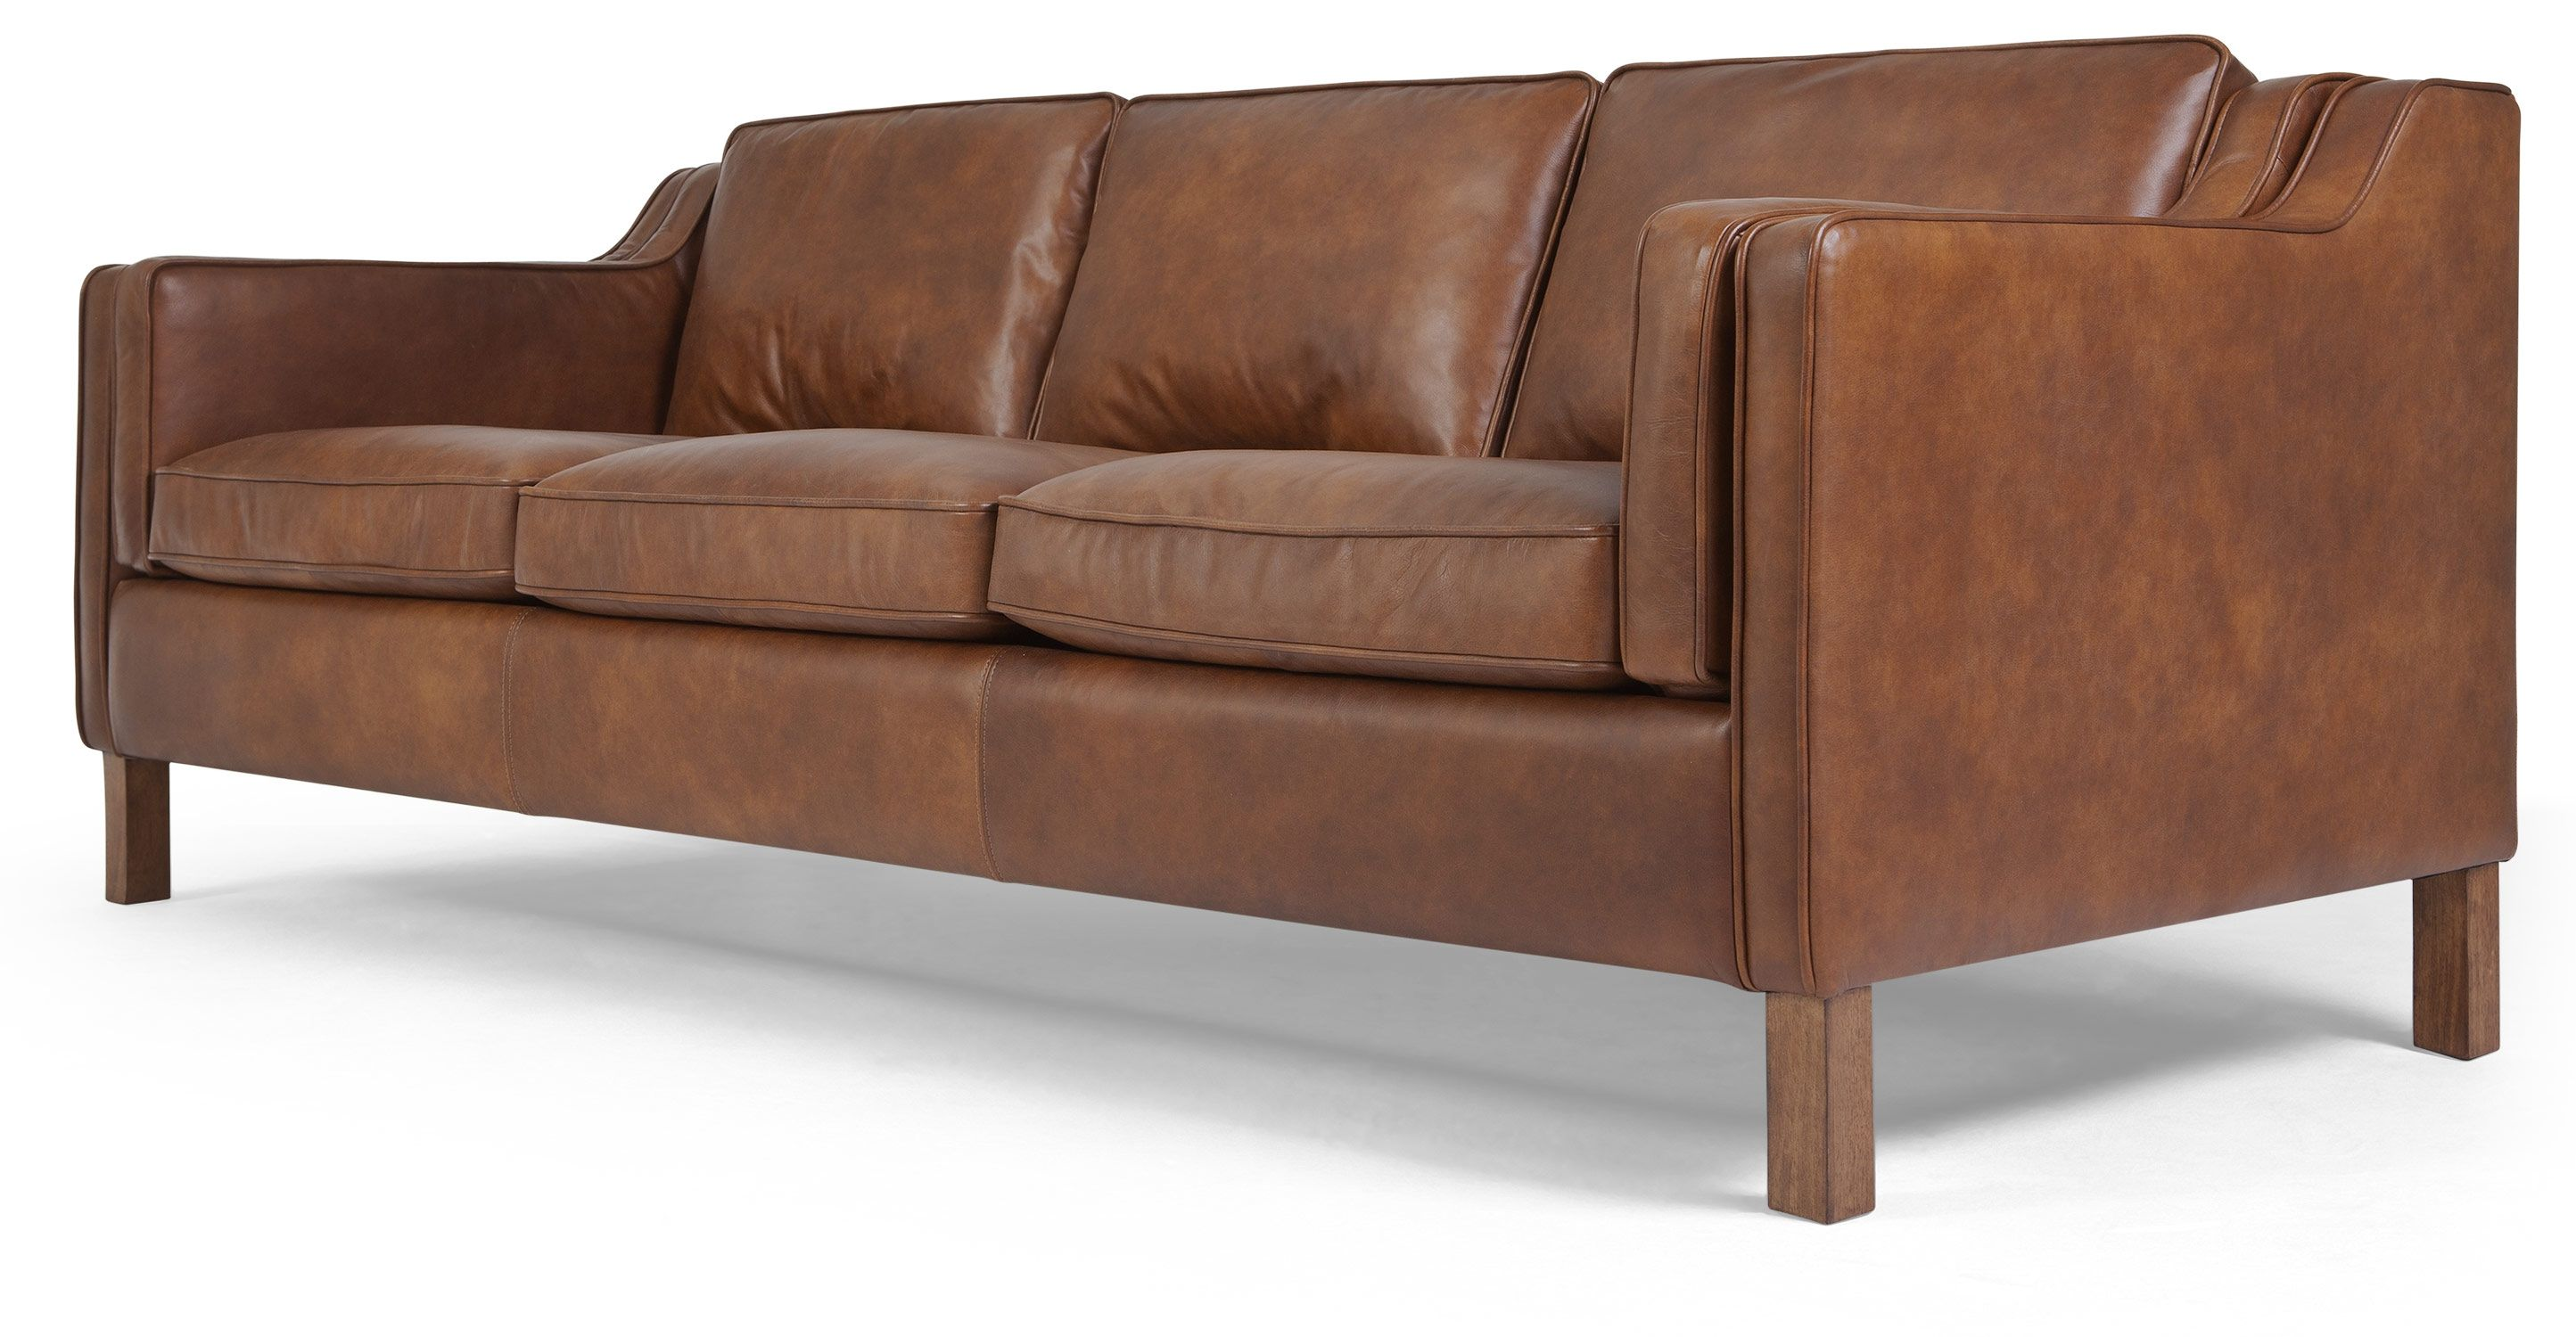 sofas low cost morty chenille sofa bed sectional nice home design